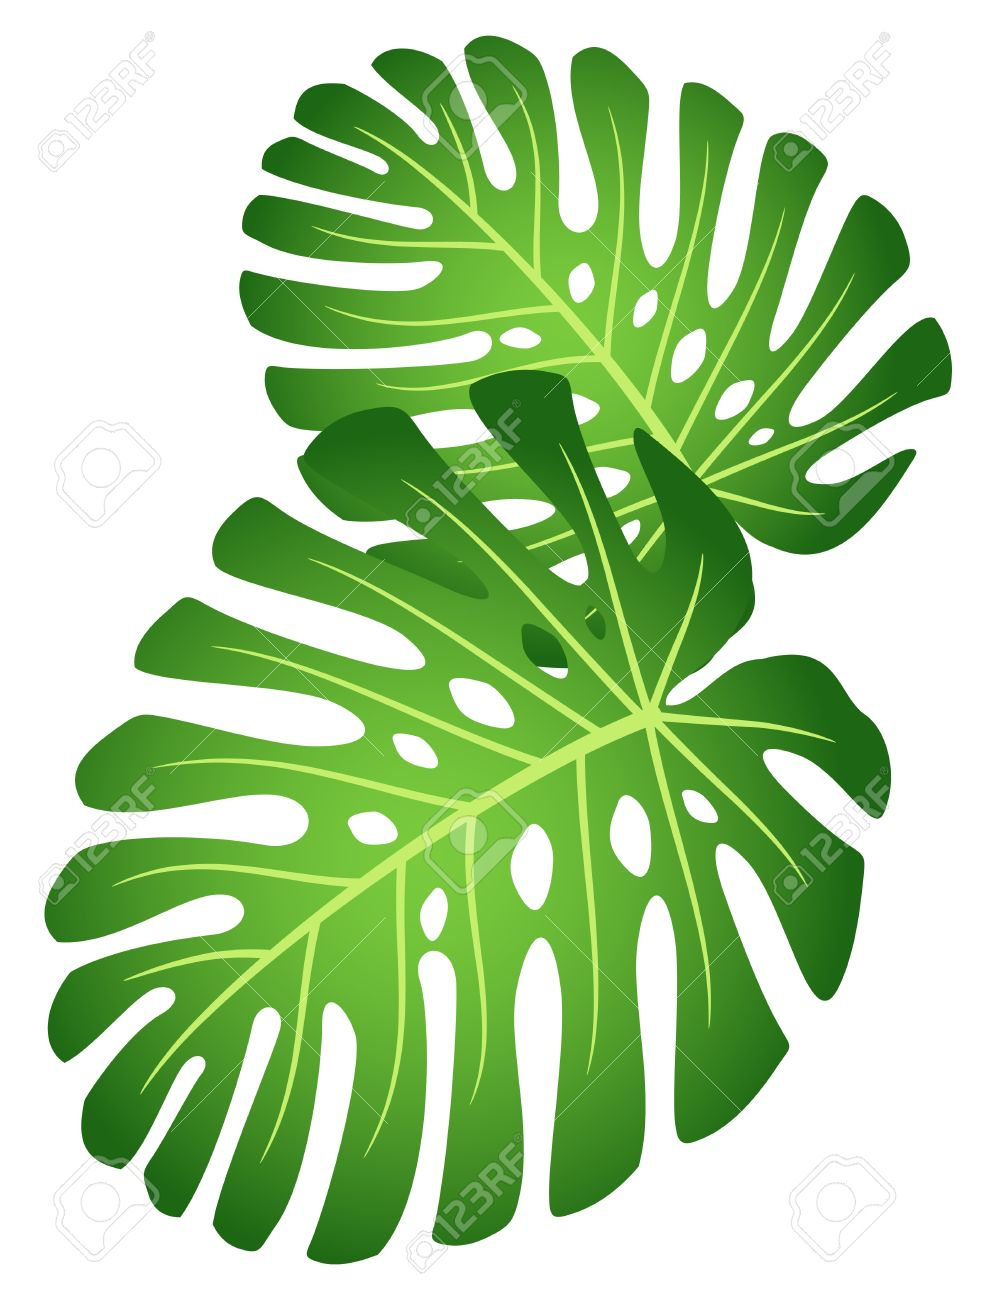 Rainforest leaves clipart clipart transparent library Rainforest leaves clipart » Clipart Station clipart transparent library